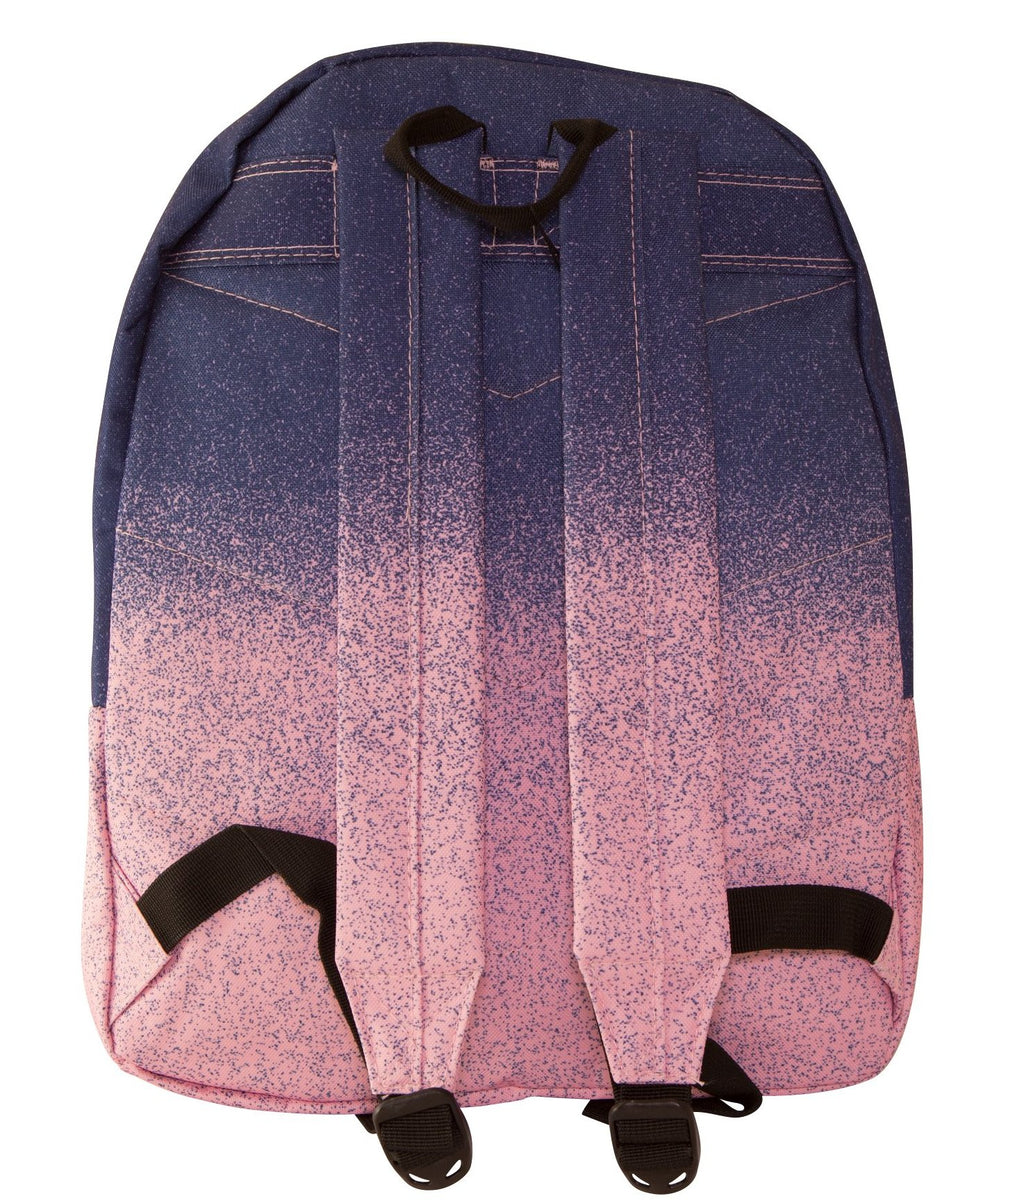 HYPE SPECKLE FADE BACKPACK RUCKSACK BAG - BLUE/PINK